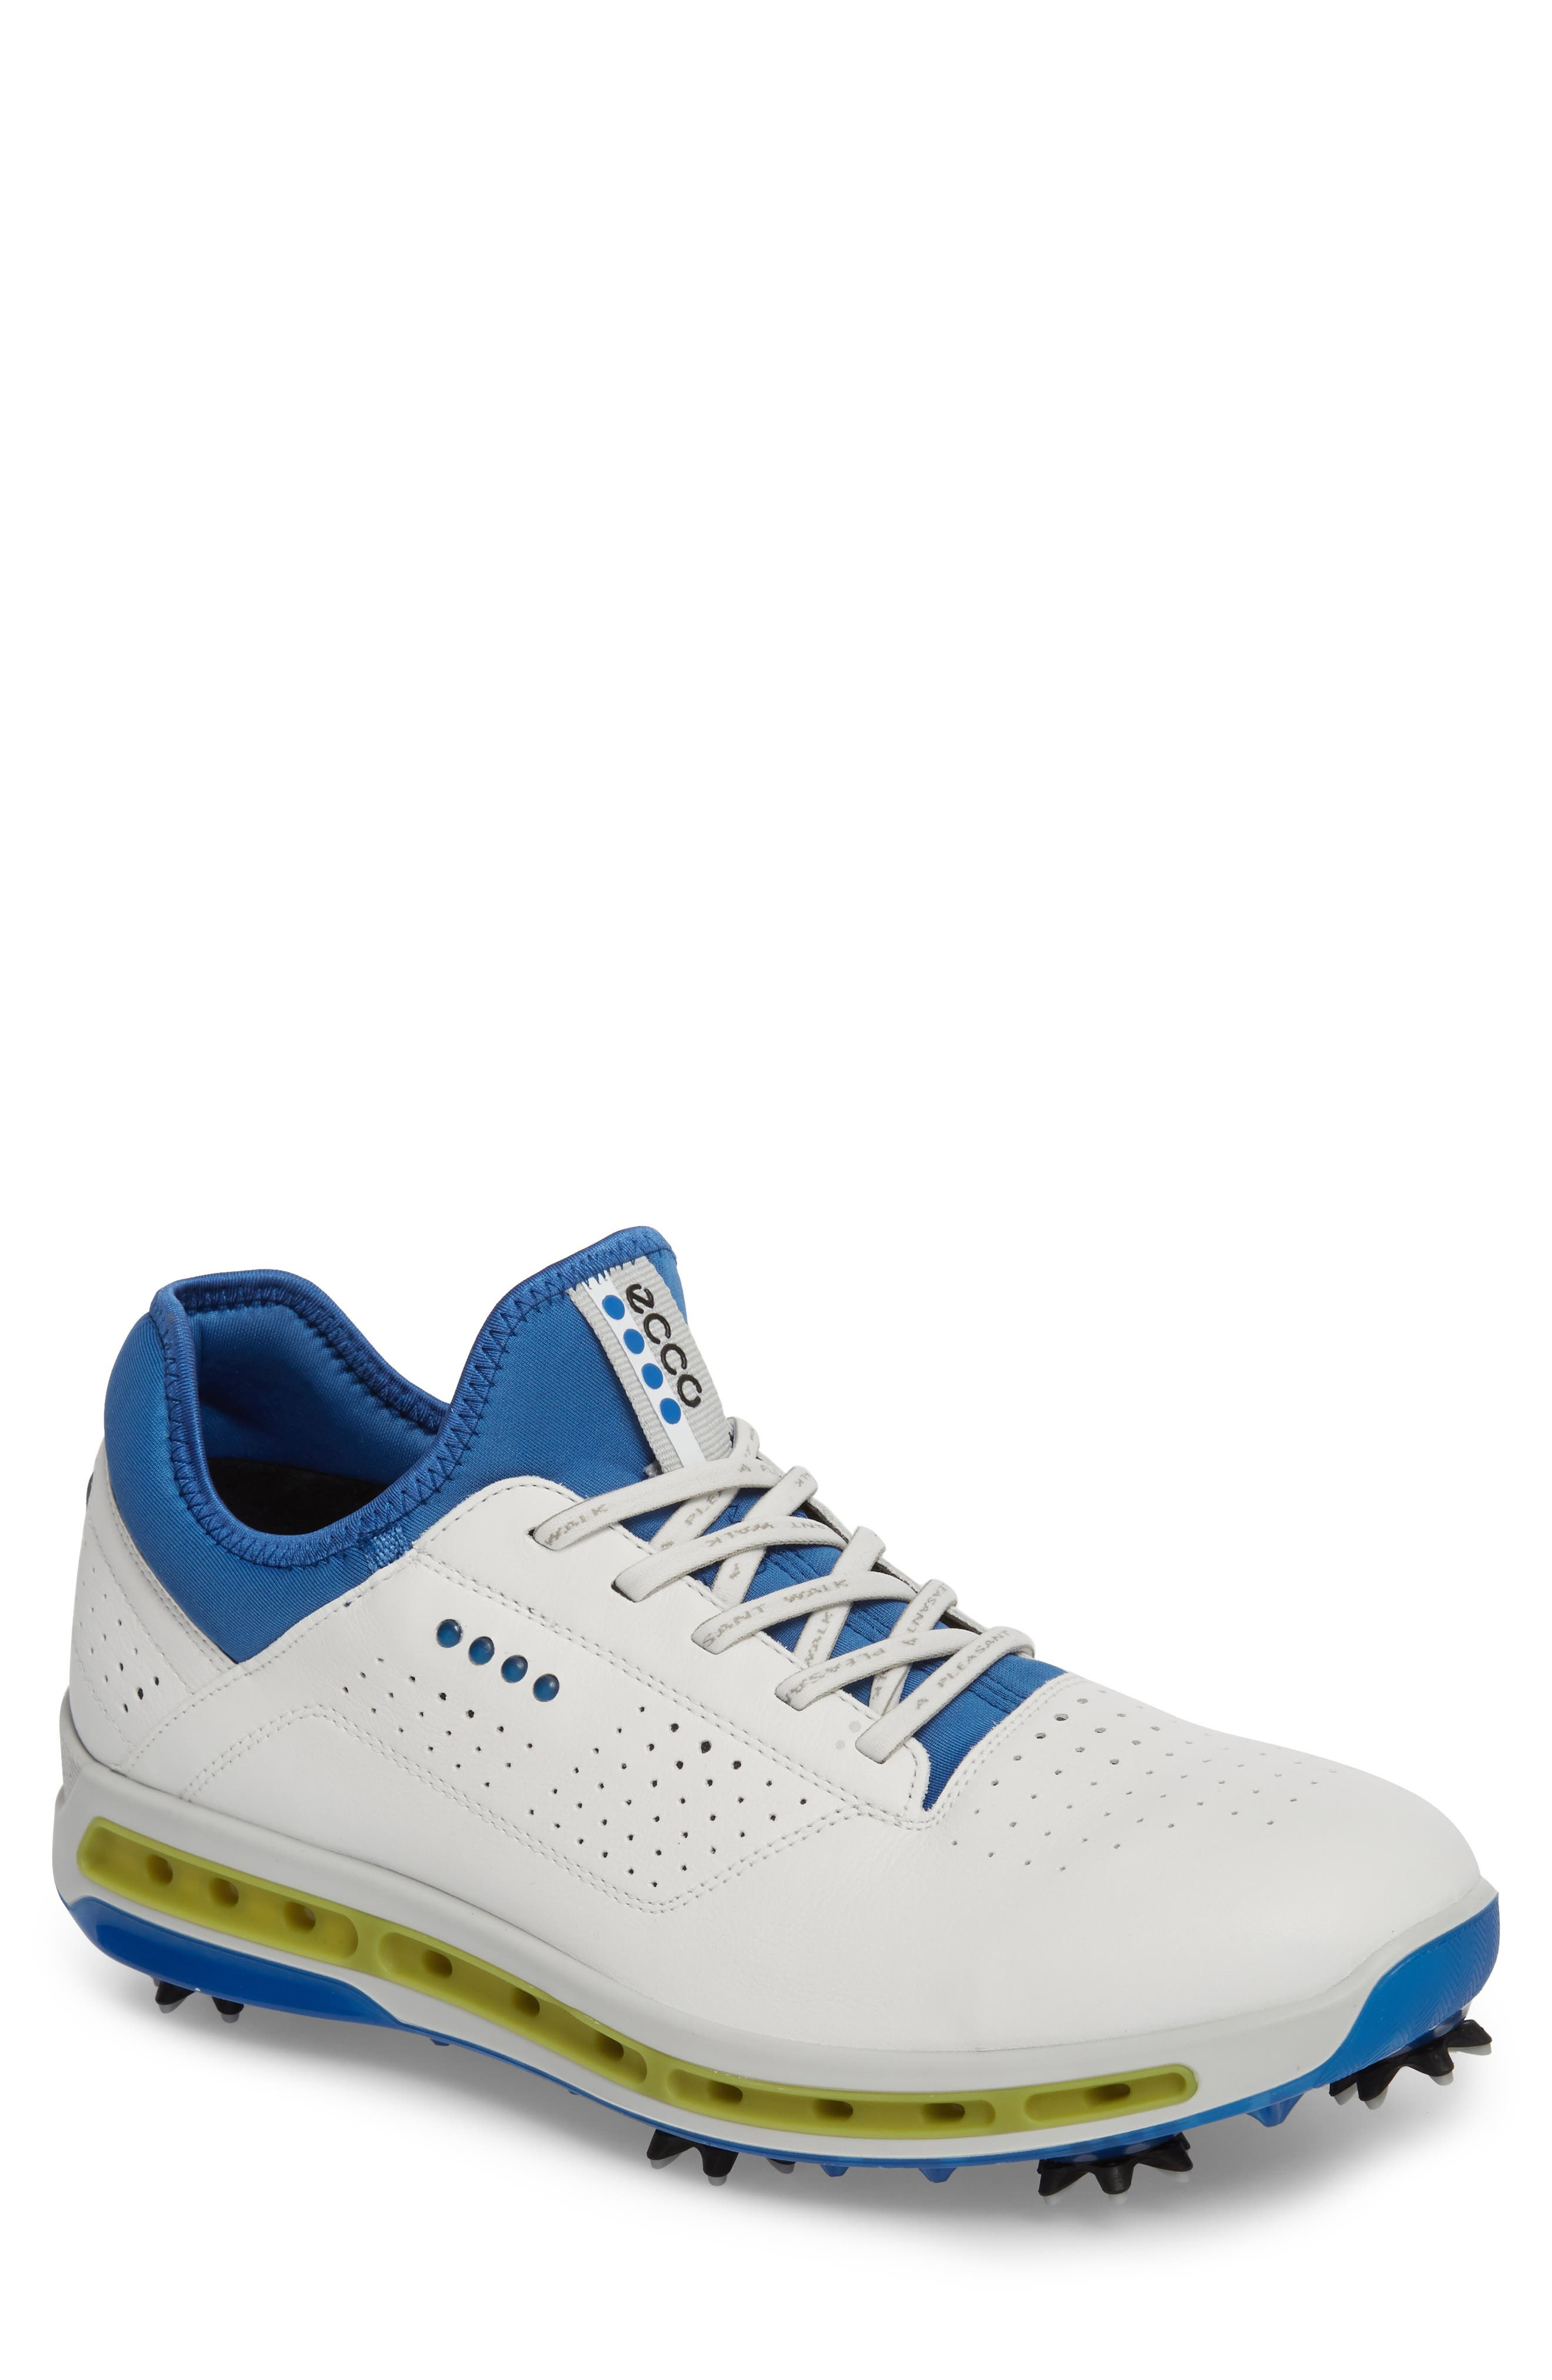 Cool 18 Gore-Tex Golf Shoe,                             Main thumbnail 1, color,                             White Leather